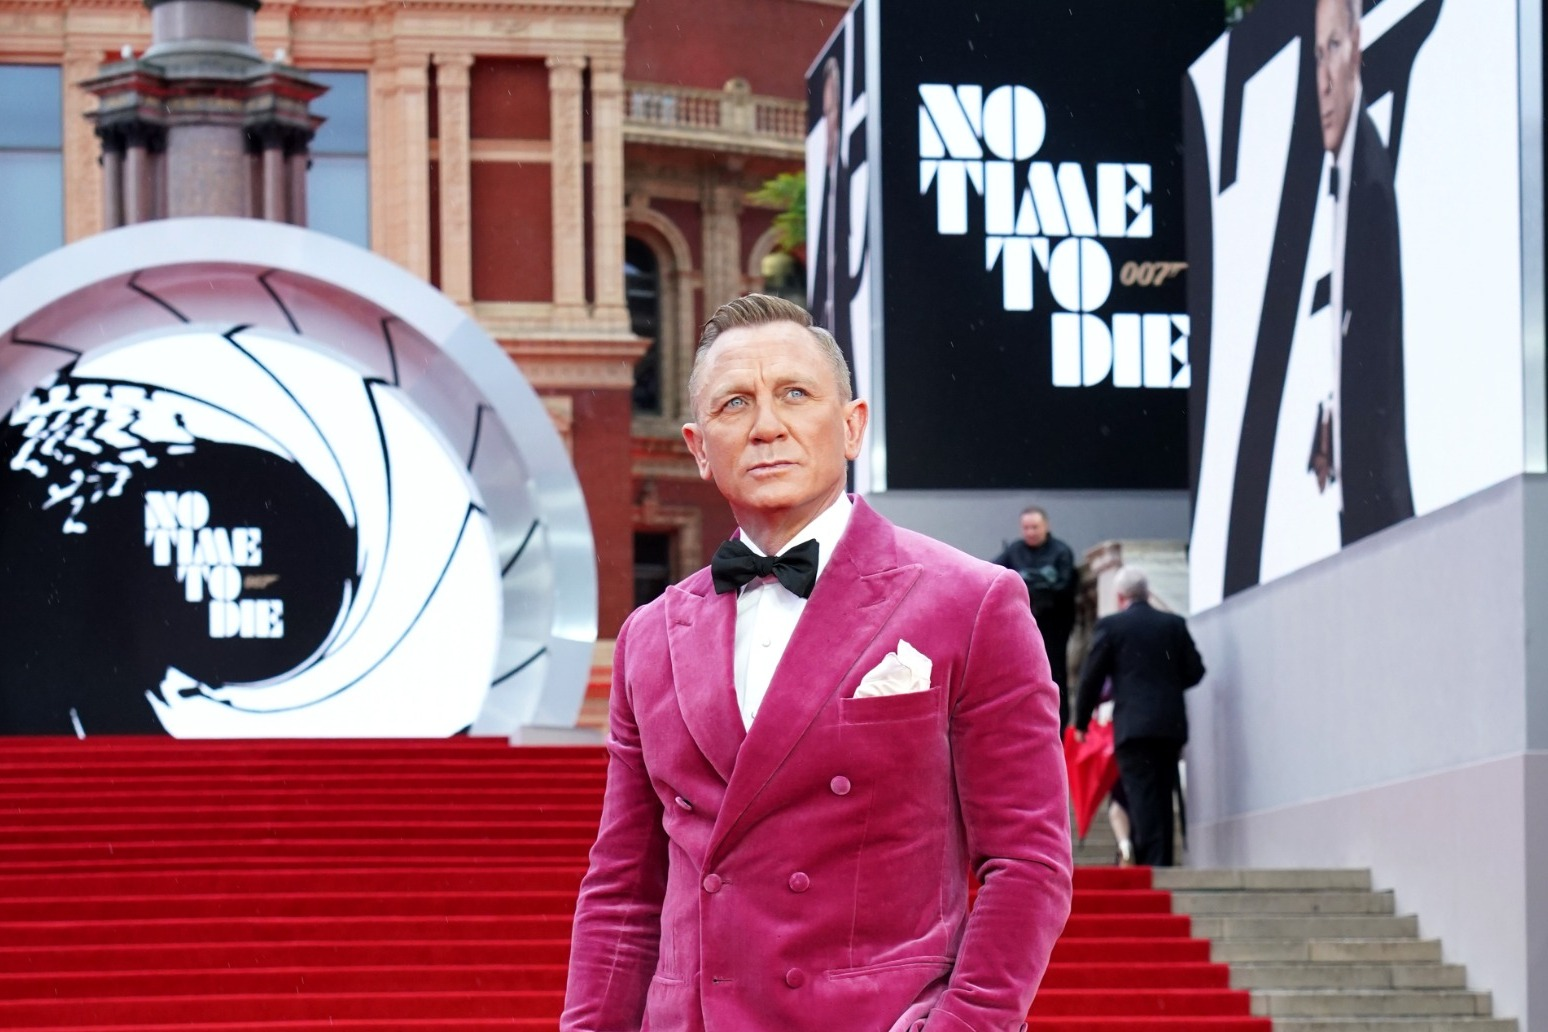 No Time To Die album becomes highest-charting James Bond soundtrack of all time